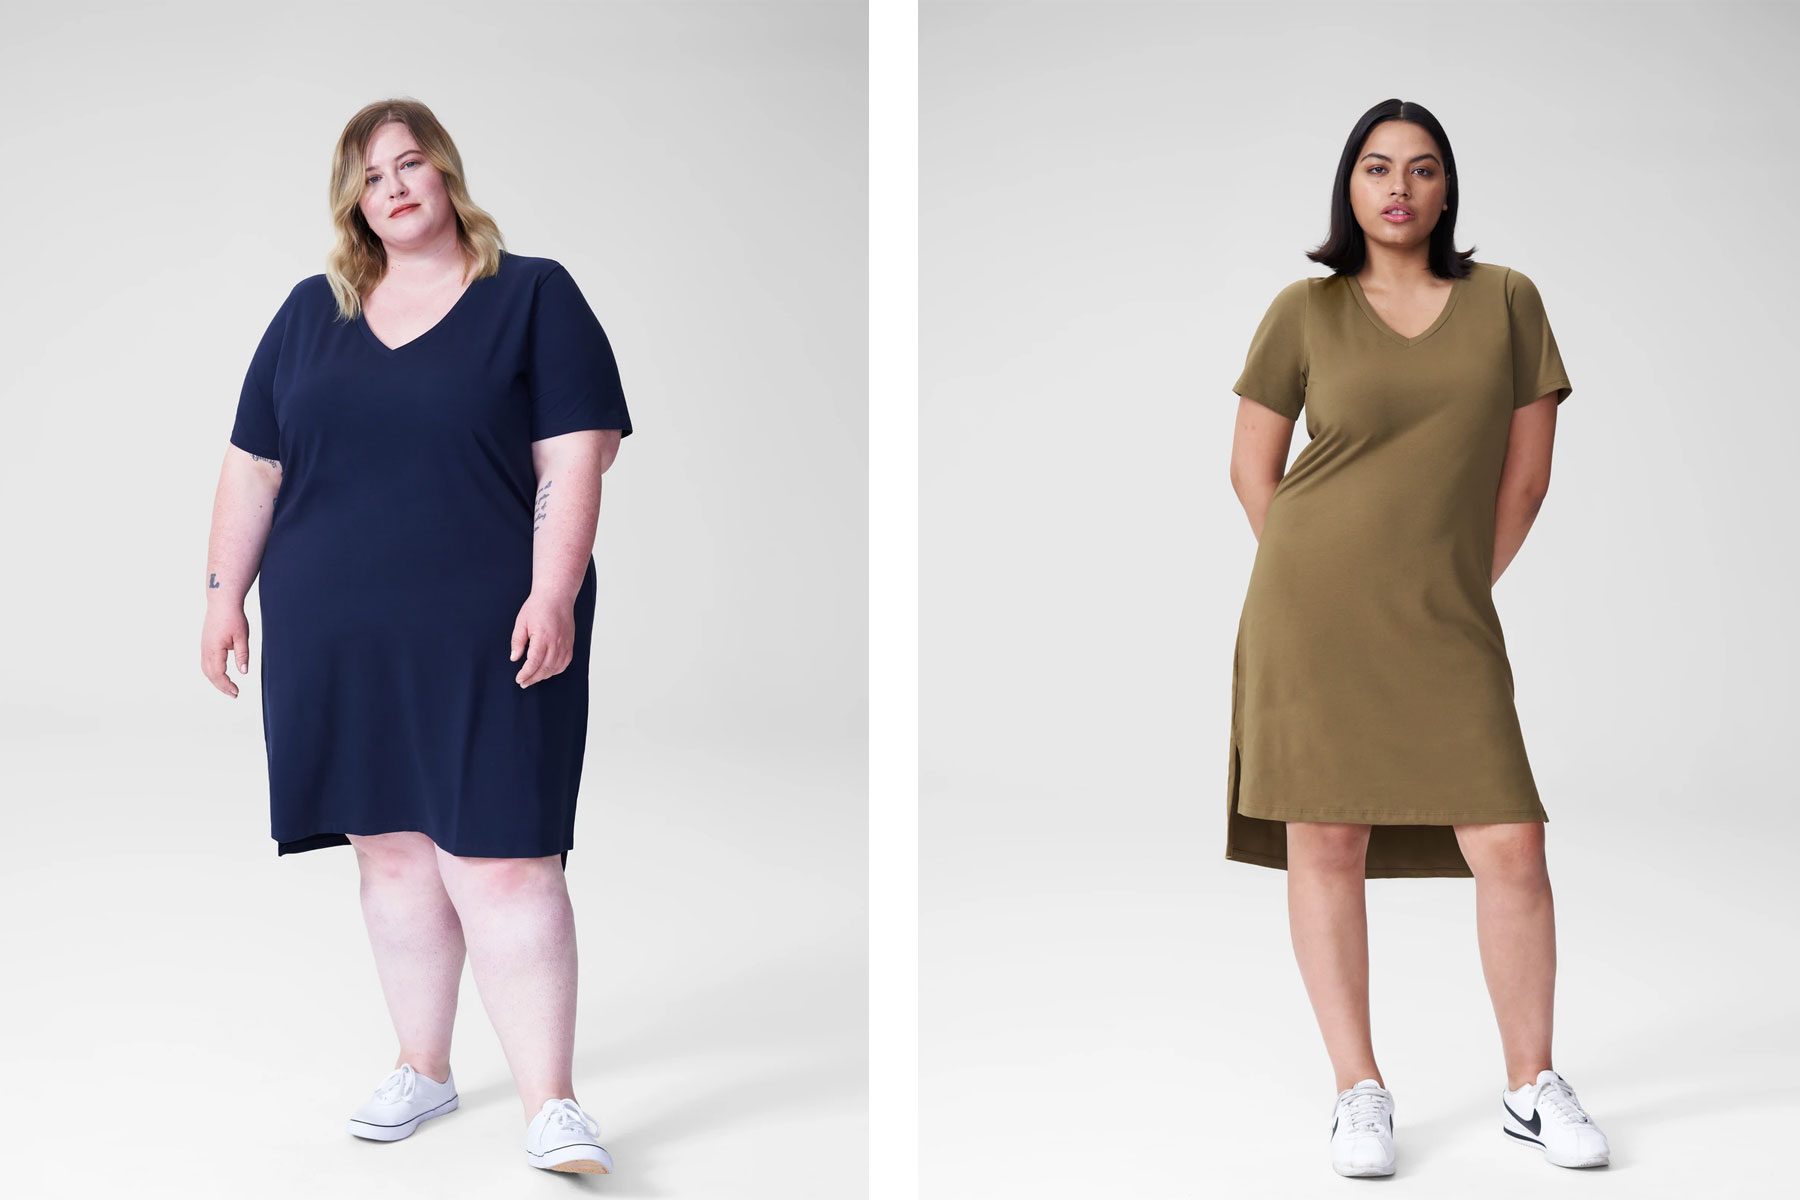 Women wearing navy and olive t-shirt dresses